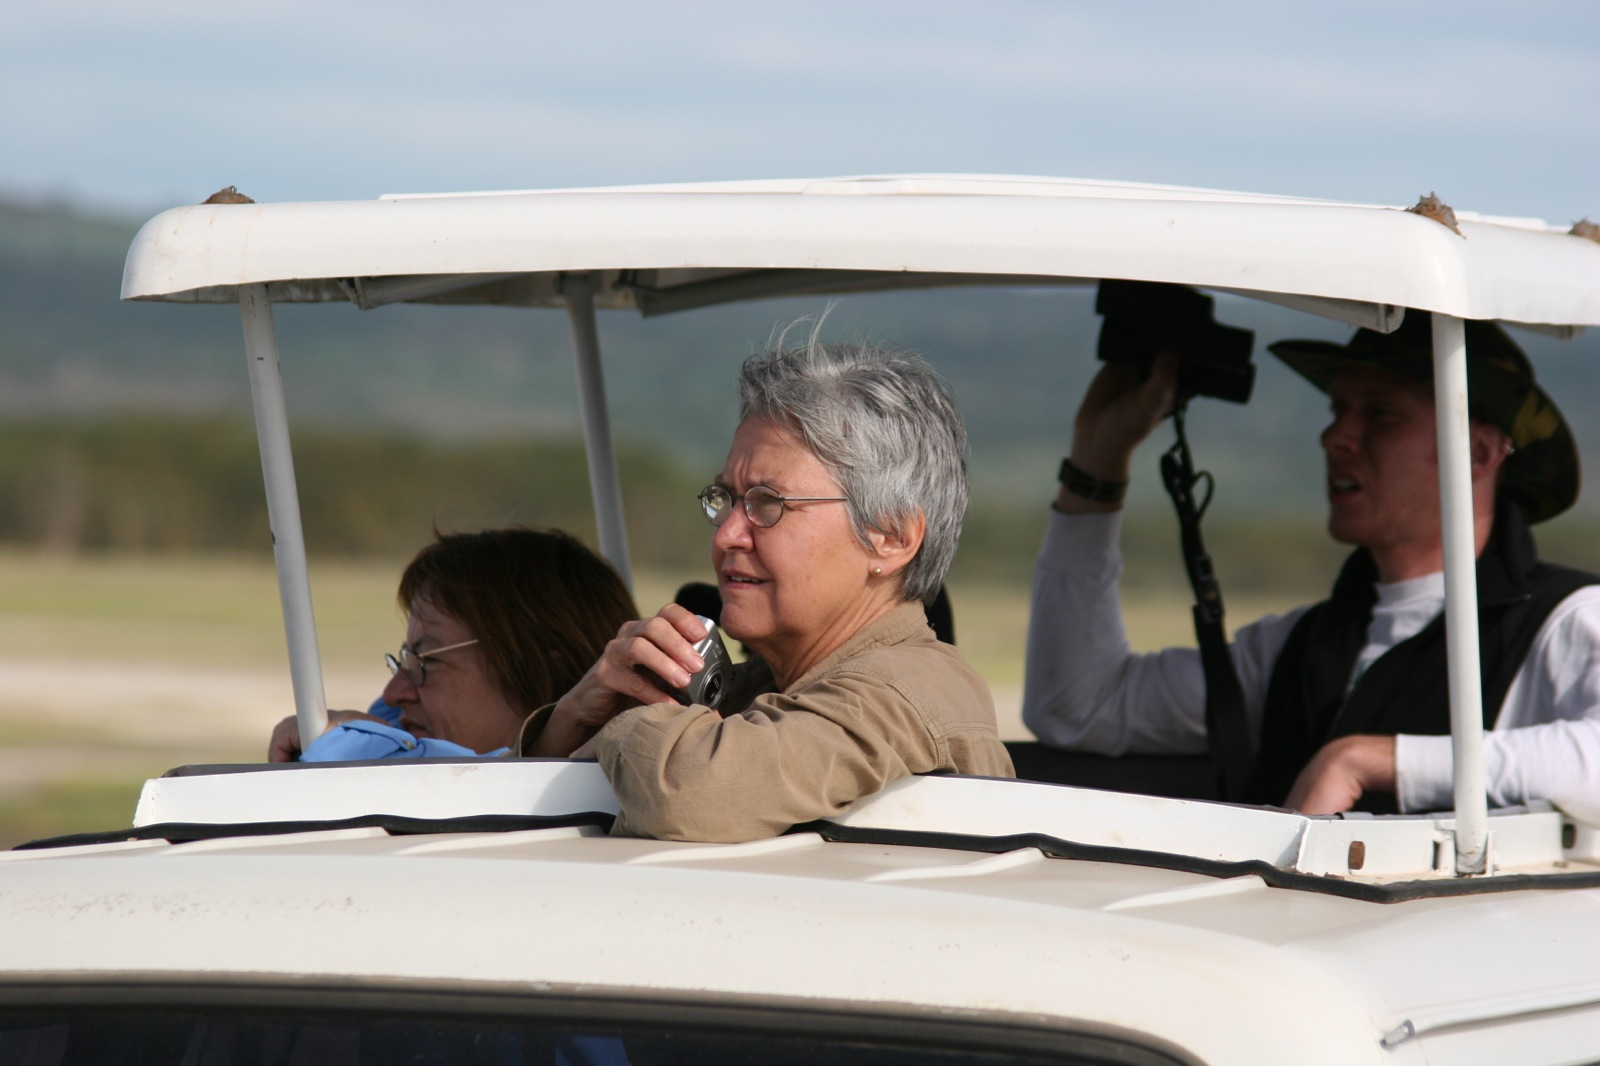 Three participants holding cameras and binoculars poke their heads out of a pop top safari van to look for wildlife.